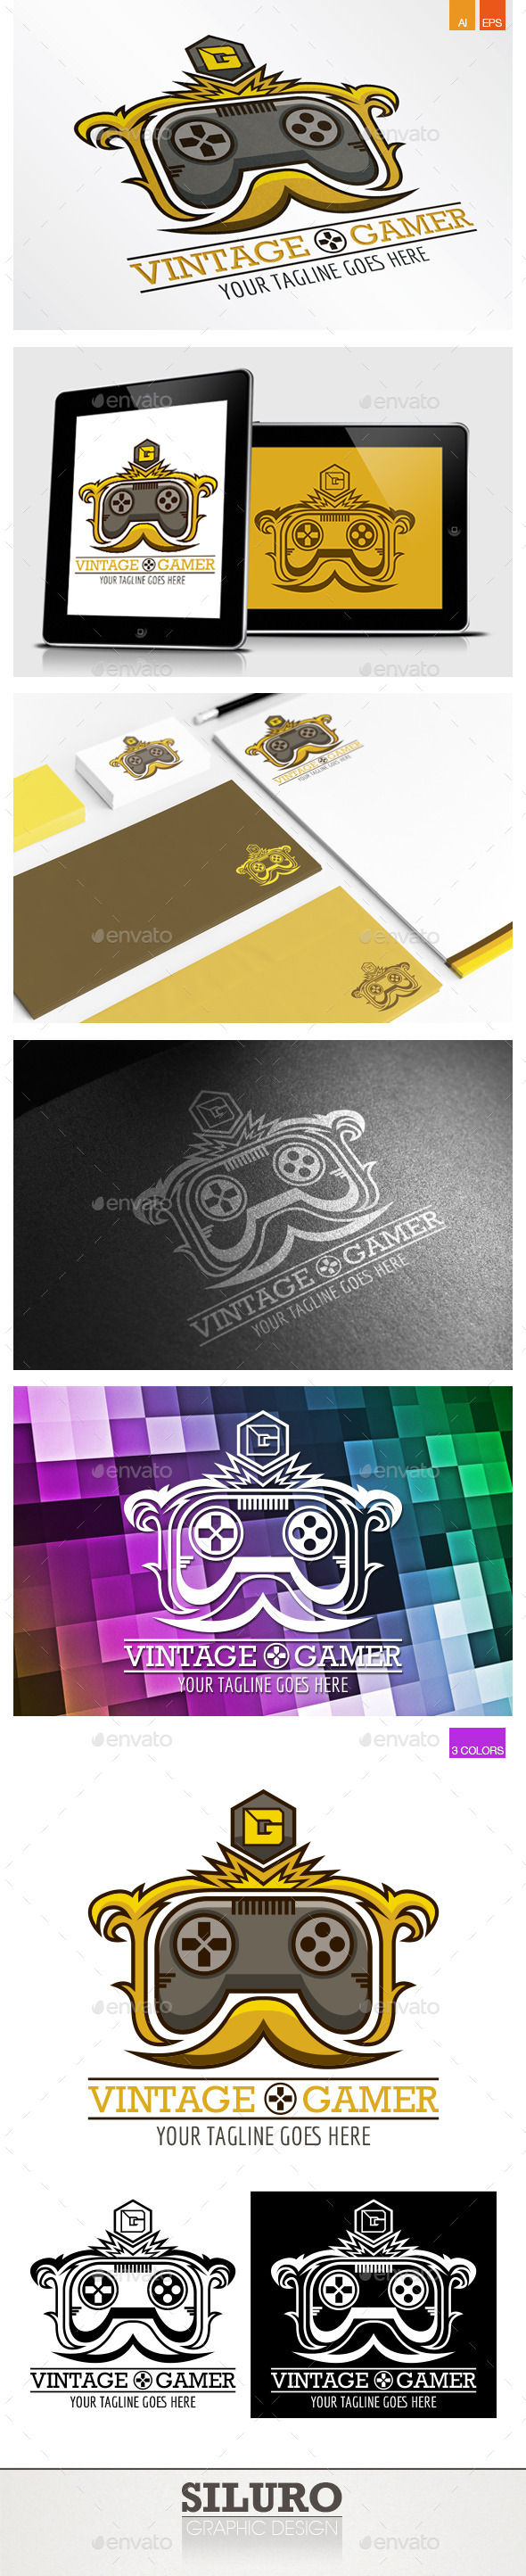 GraphicRiver Vintage Gamer Logo 9259555